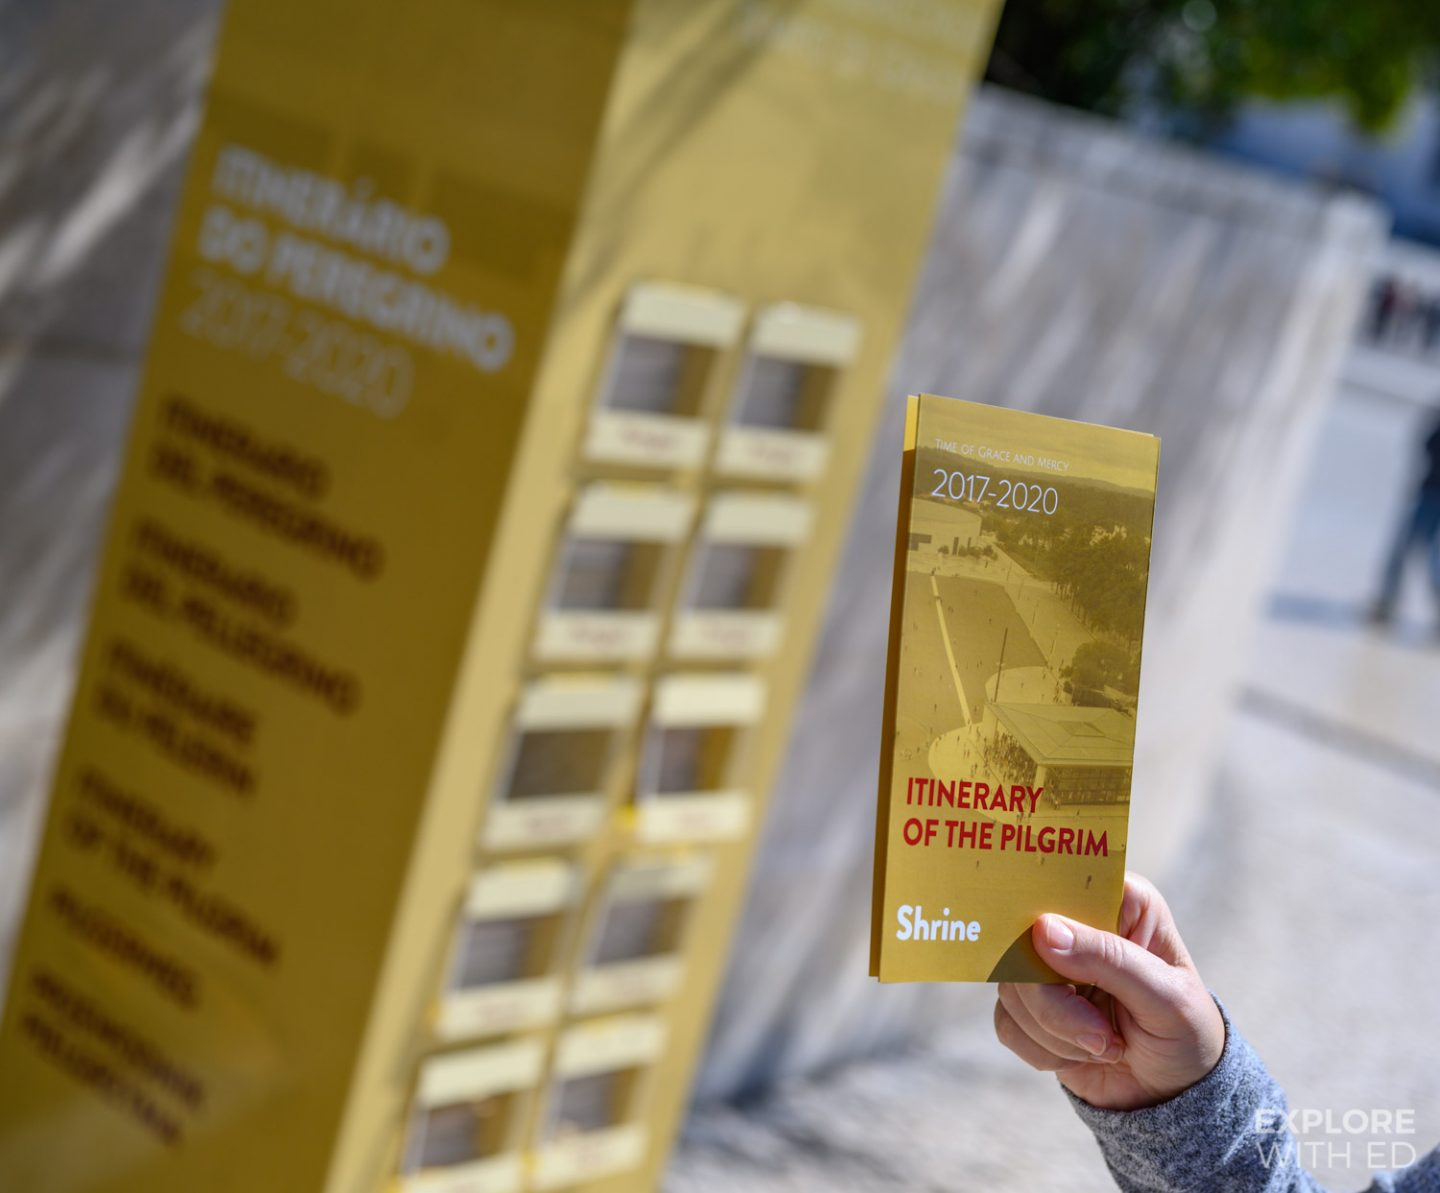 The itinerary of the pilgrim leaflet in Fatima, Portugal